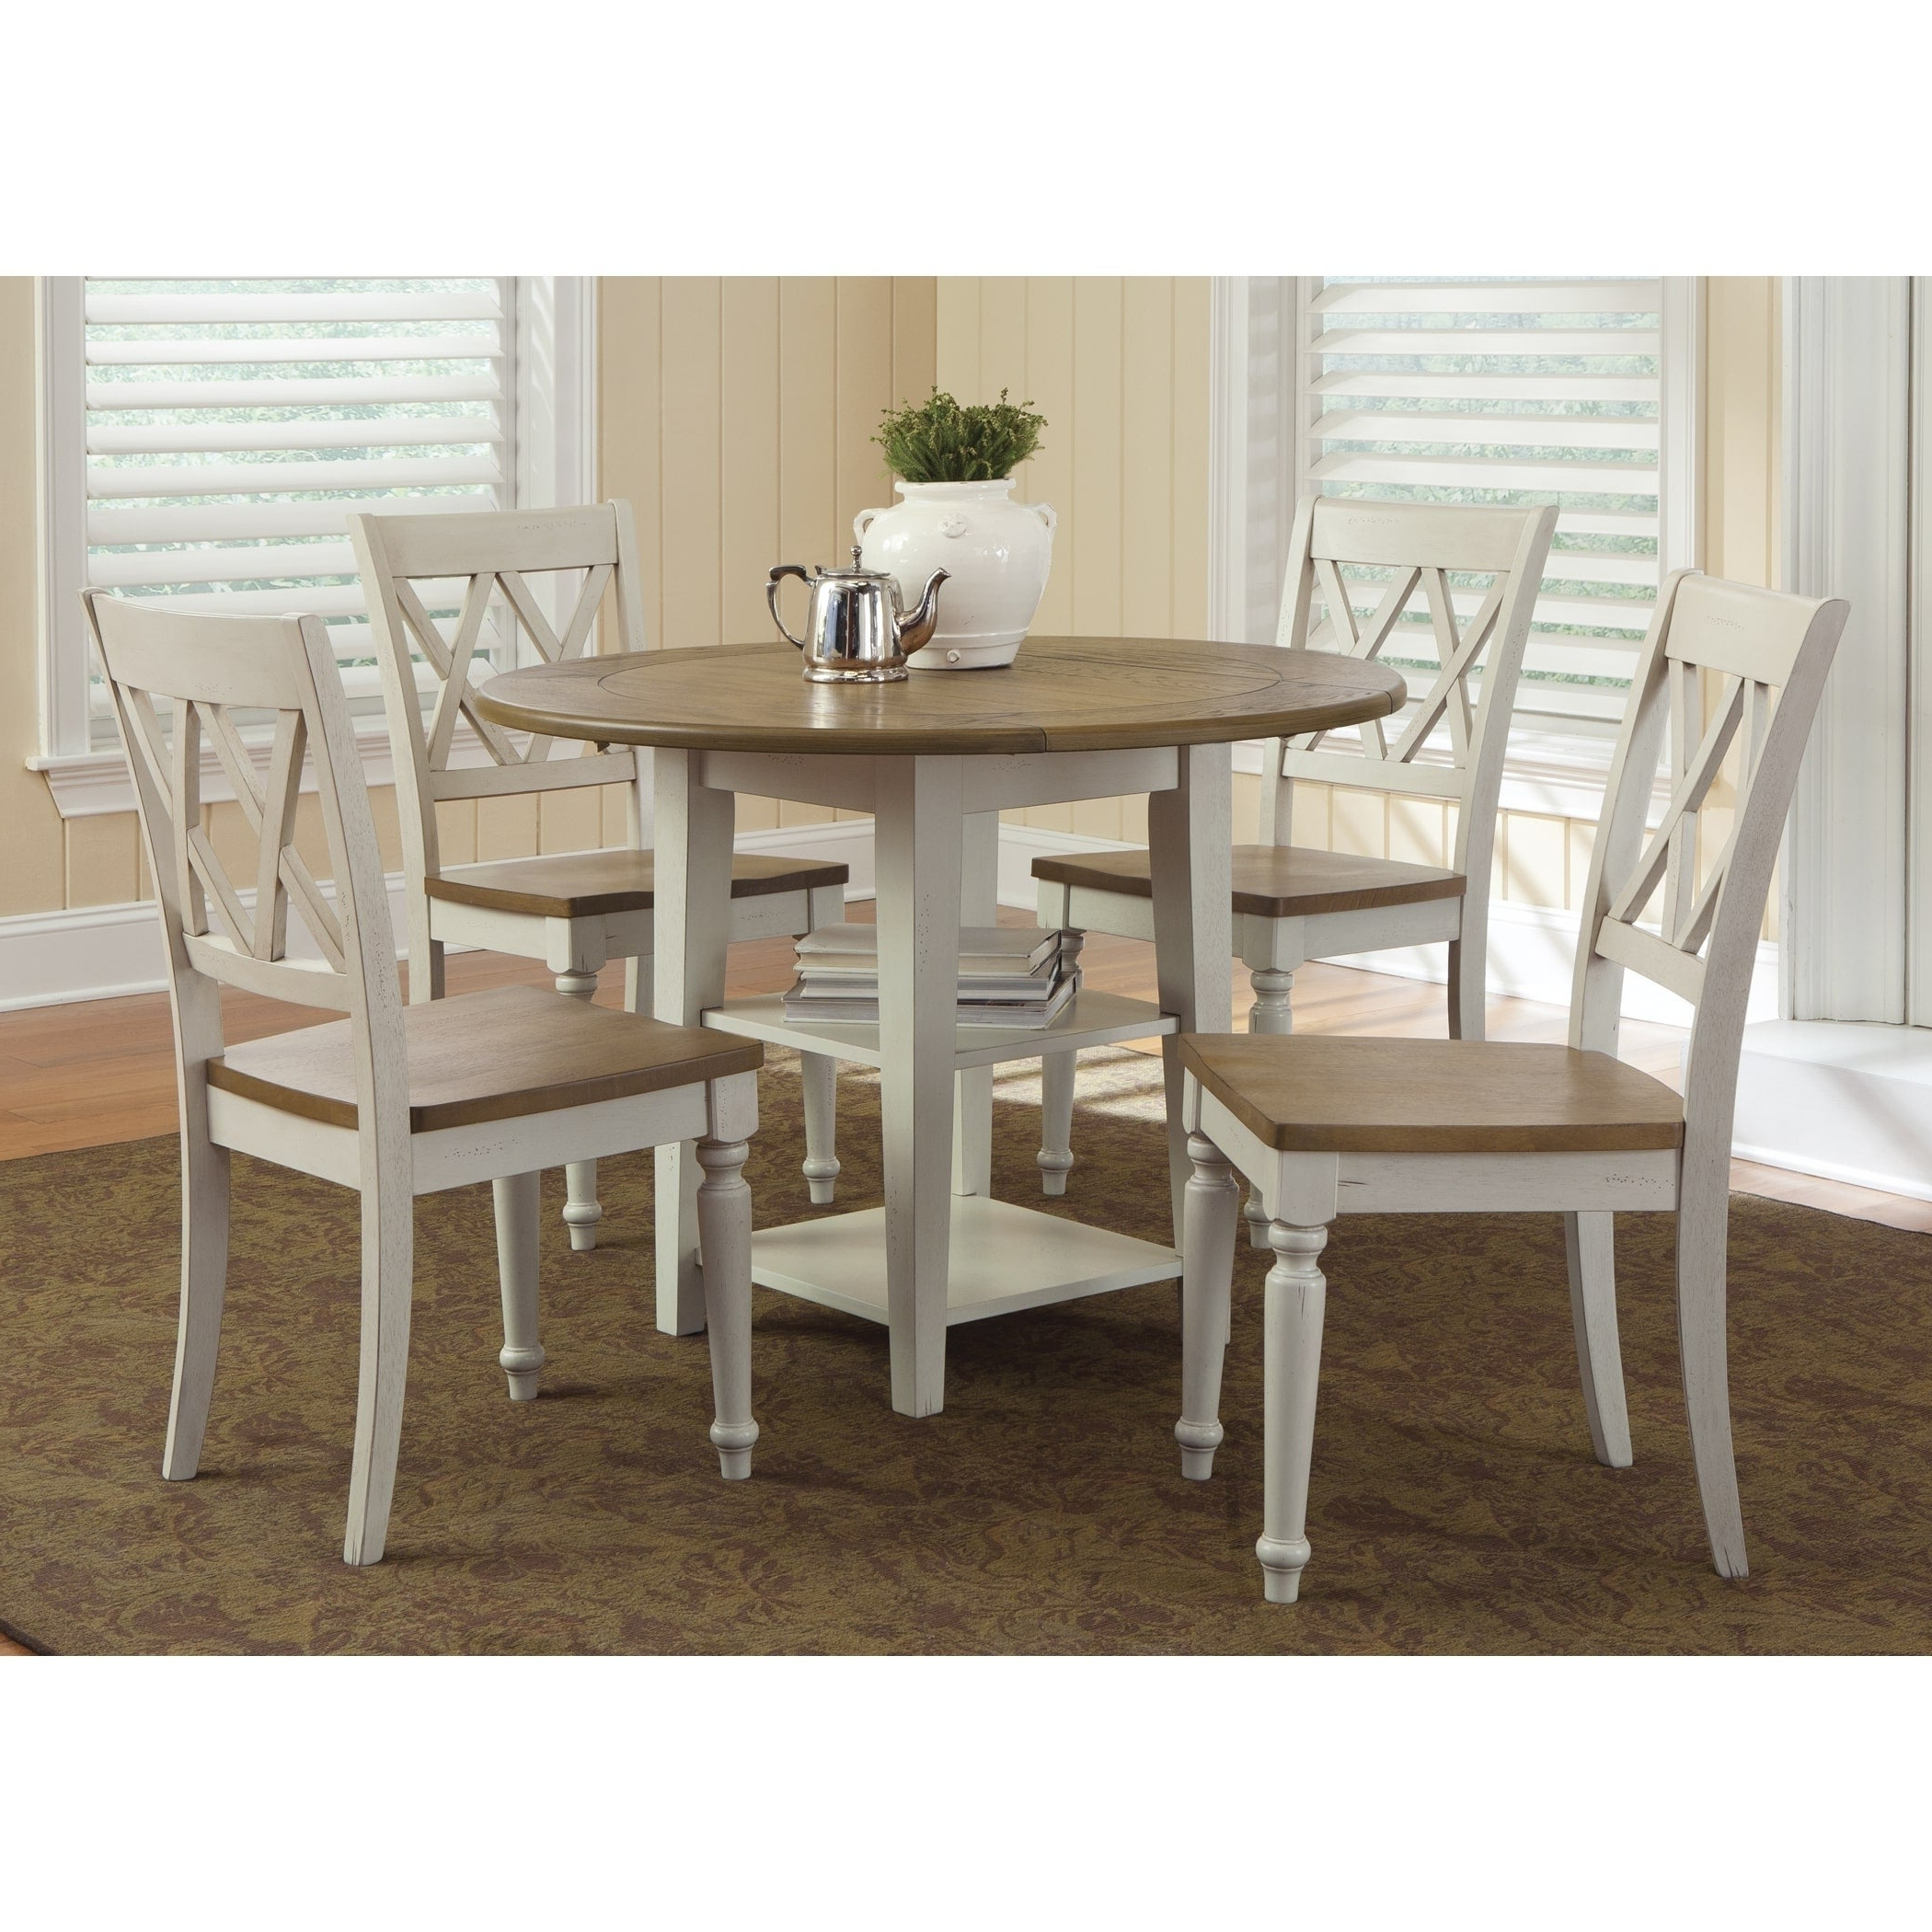 Al Fresco Two Tone Transitional Drop Leaf Leg Table – Antique White For Recent Transitional Antique Walnut Square Casual Dining Tables (View 3 of 25)